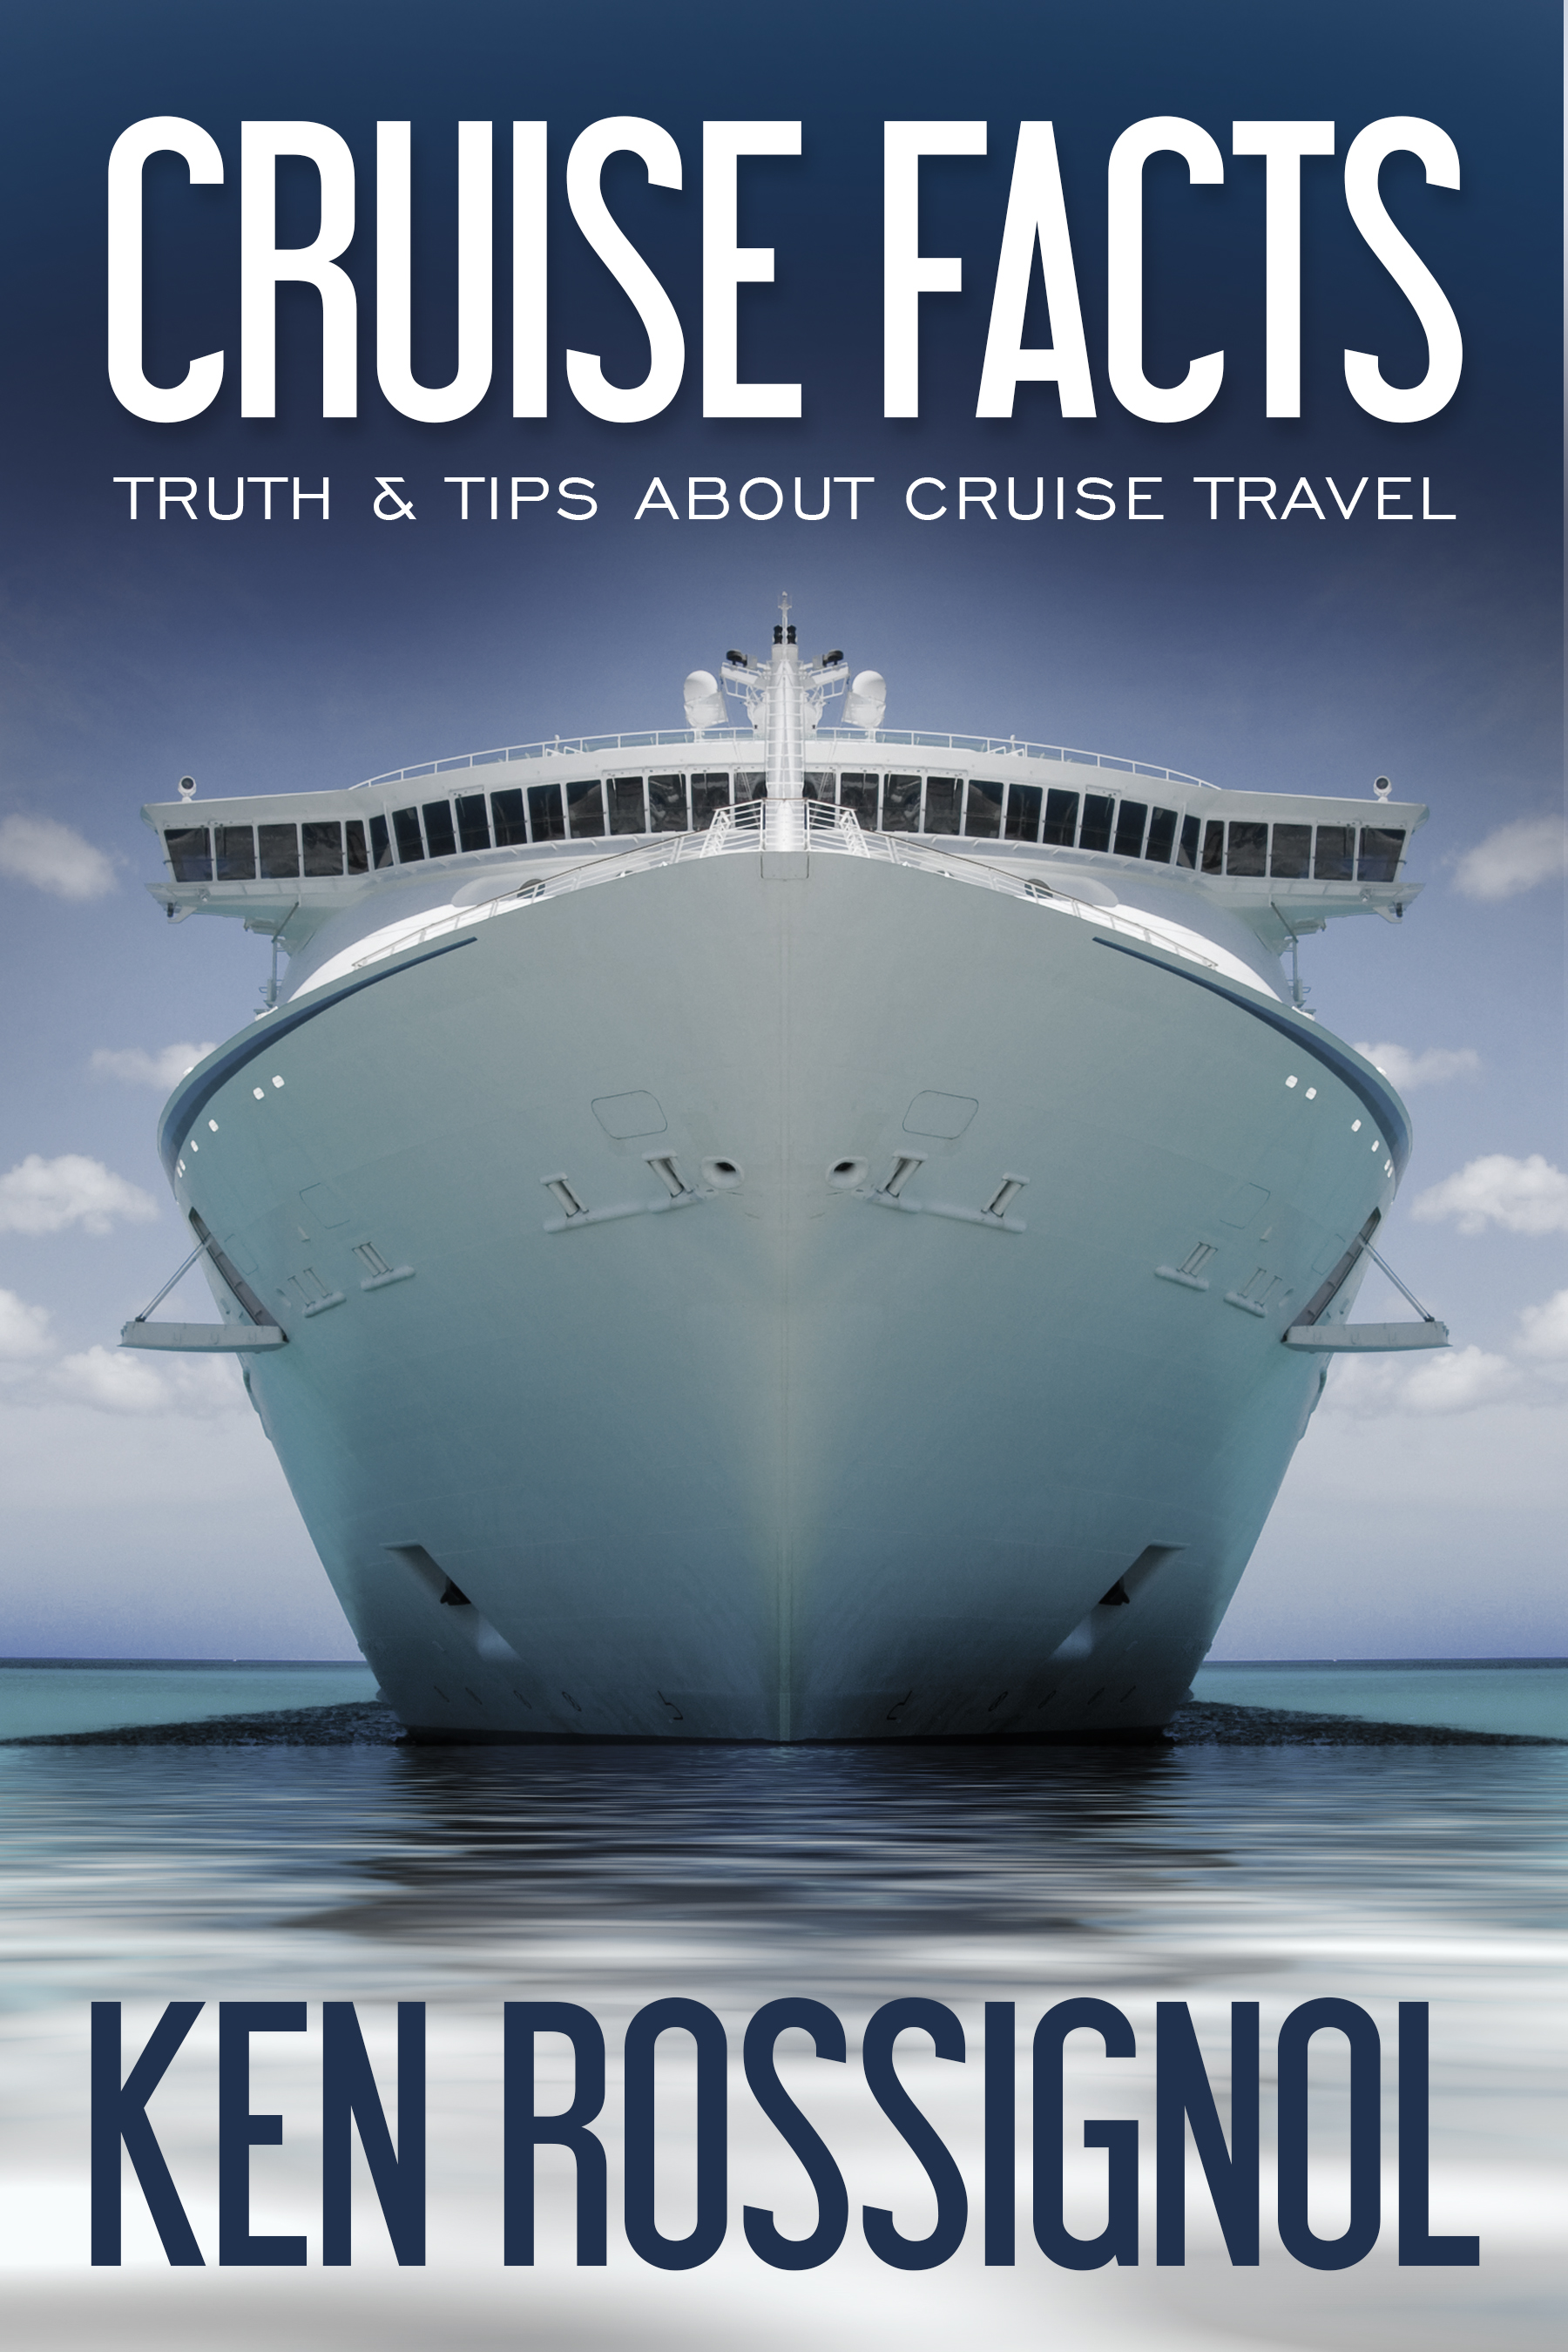 CRUISE FACTS: What to expect on a cruise